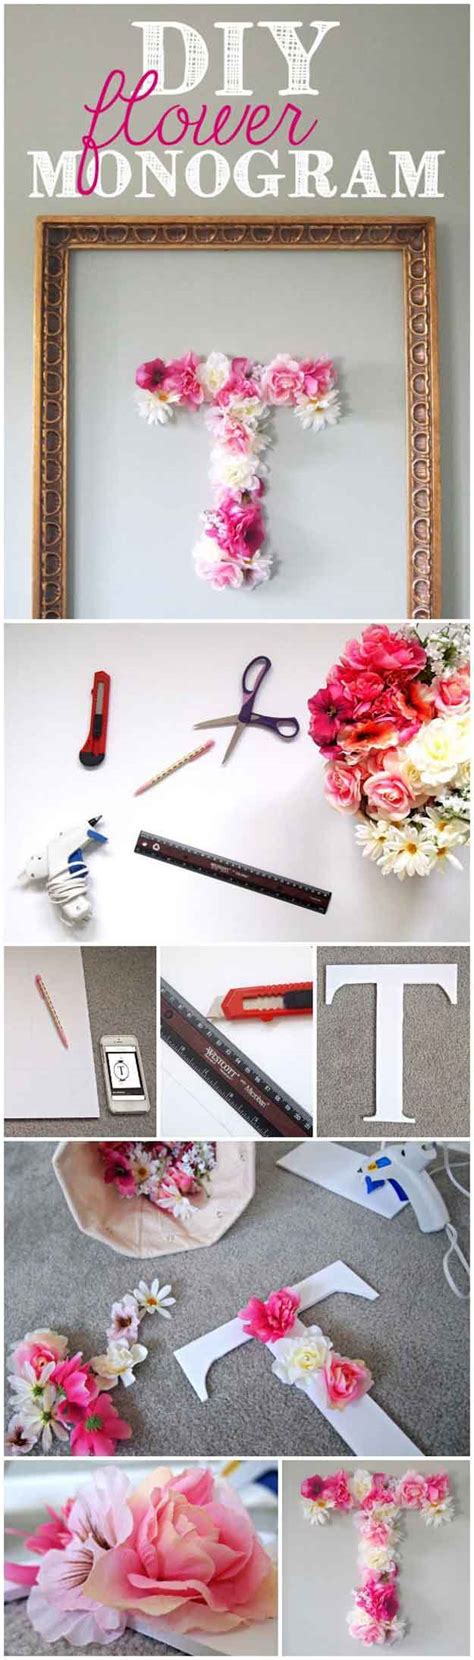 Bedroom Craft Ideas Diy Projects For Teens Bedroom Diy Ready